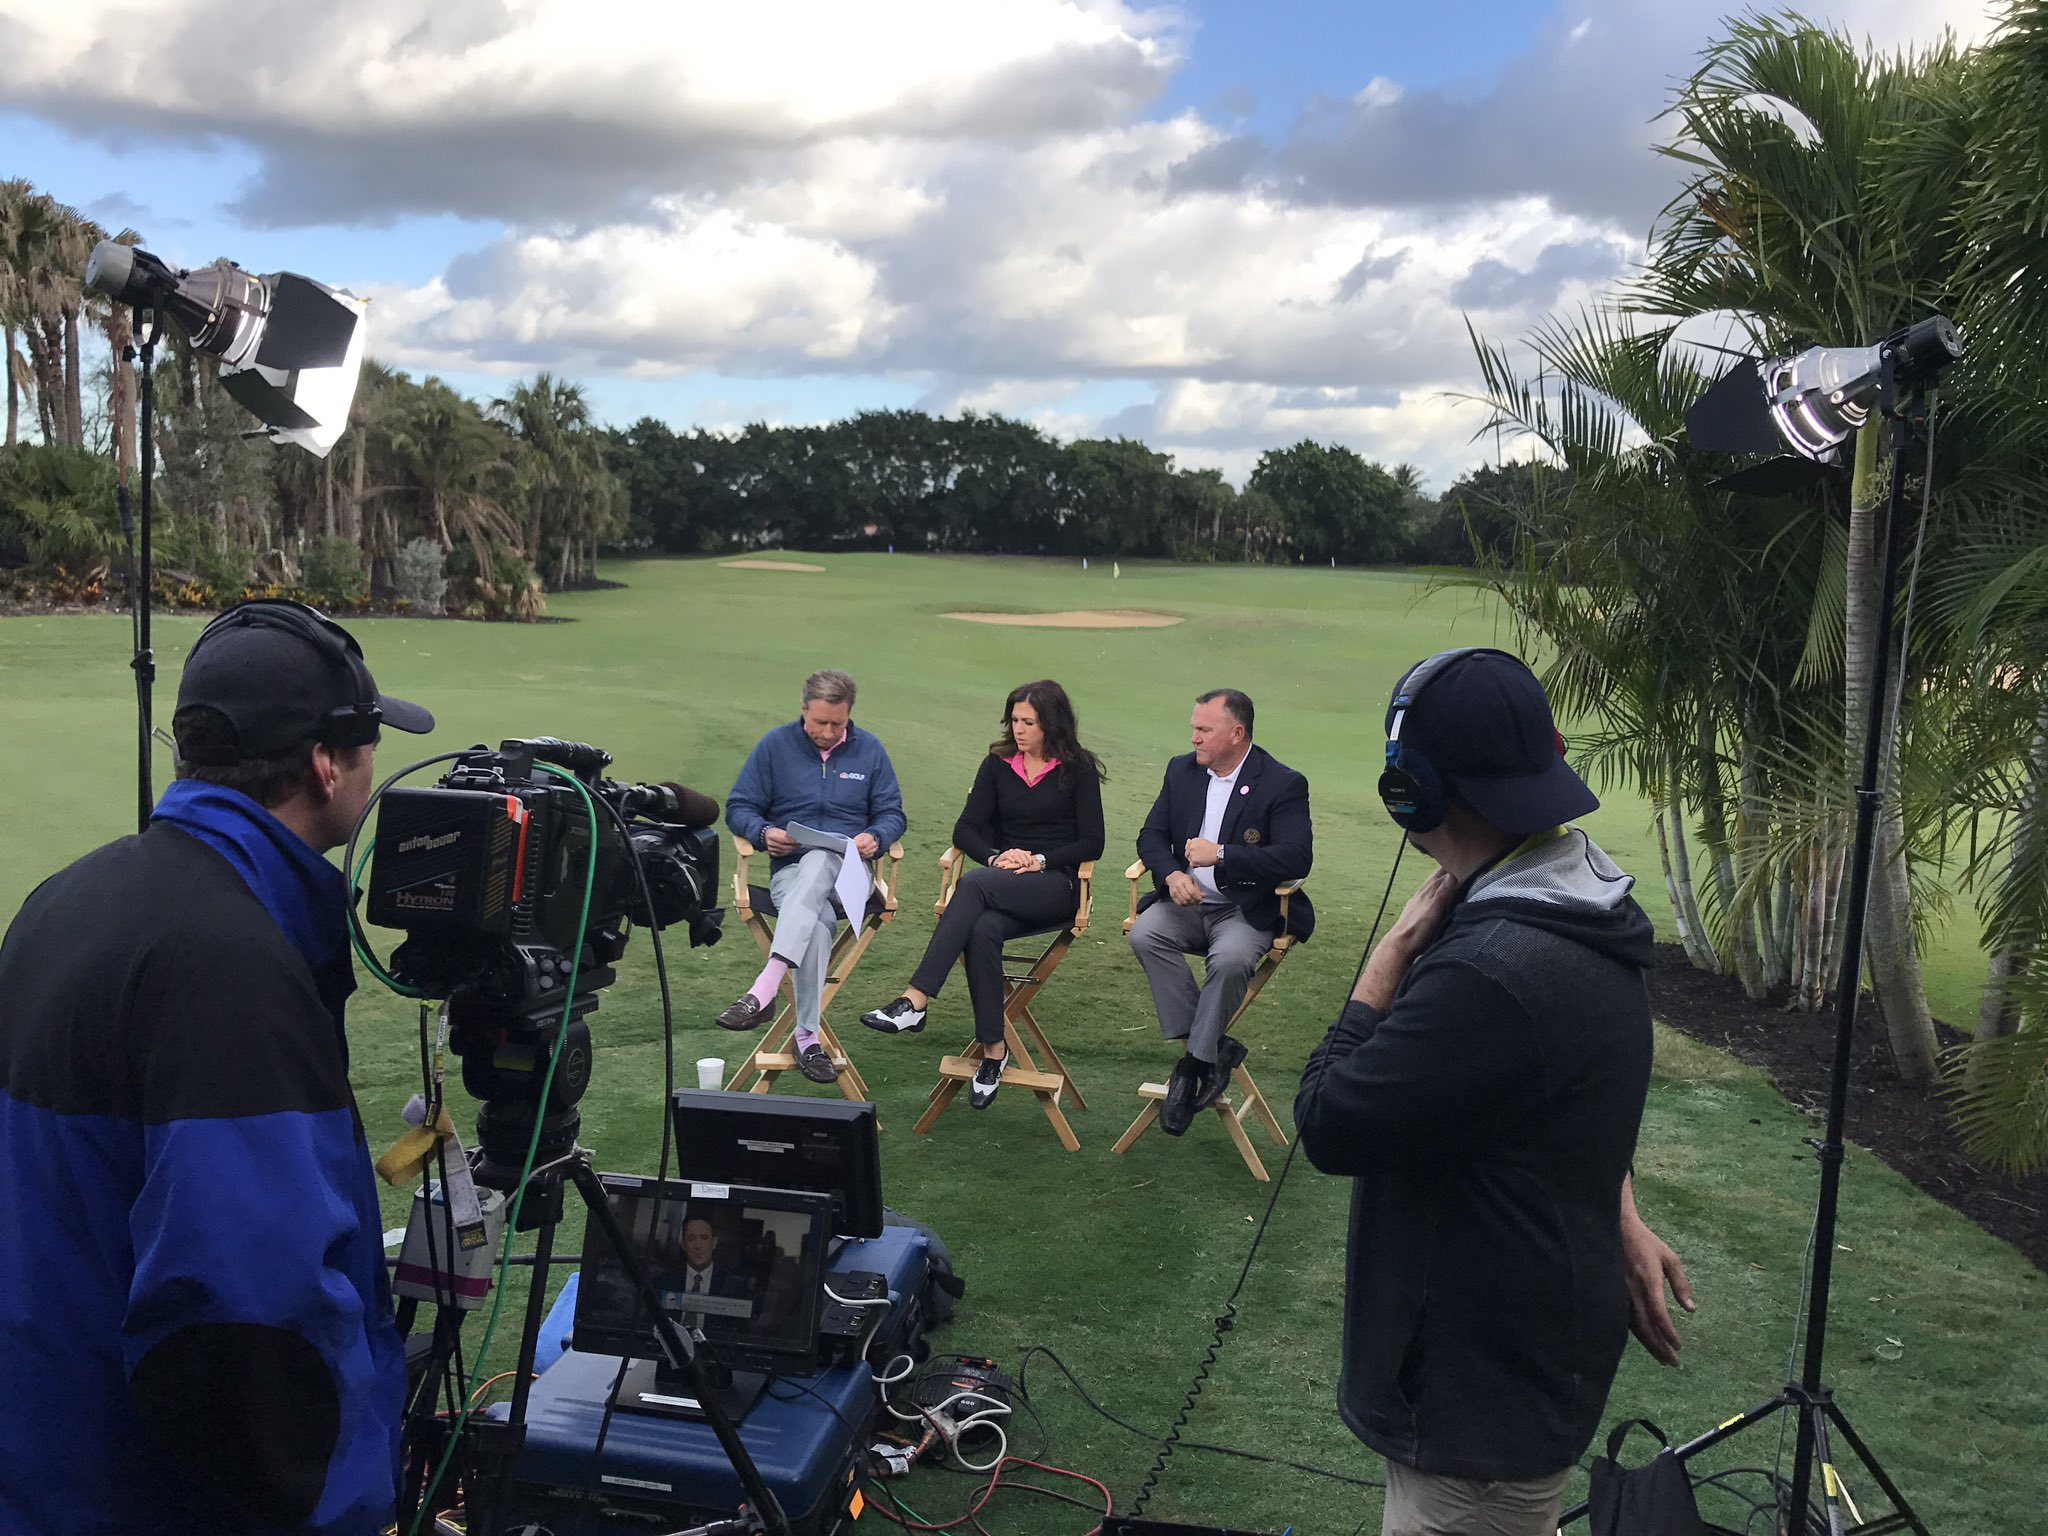 Day 2 of Morgan and Friends 17! Great to have @GCMorningDrive covering this incredible event! @mpressel @MP_Foundation https://t.co/bH1J0sonif